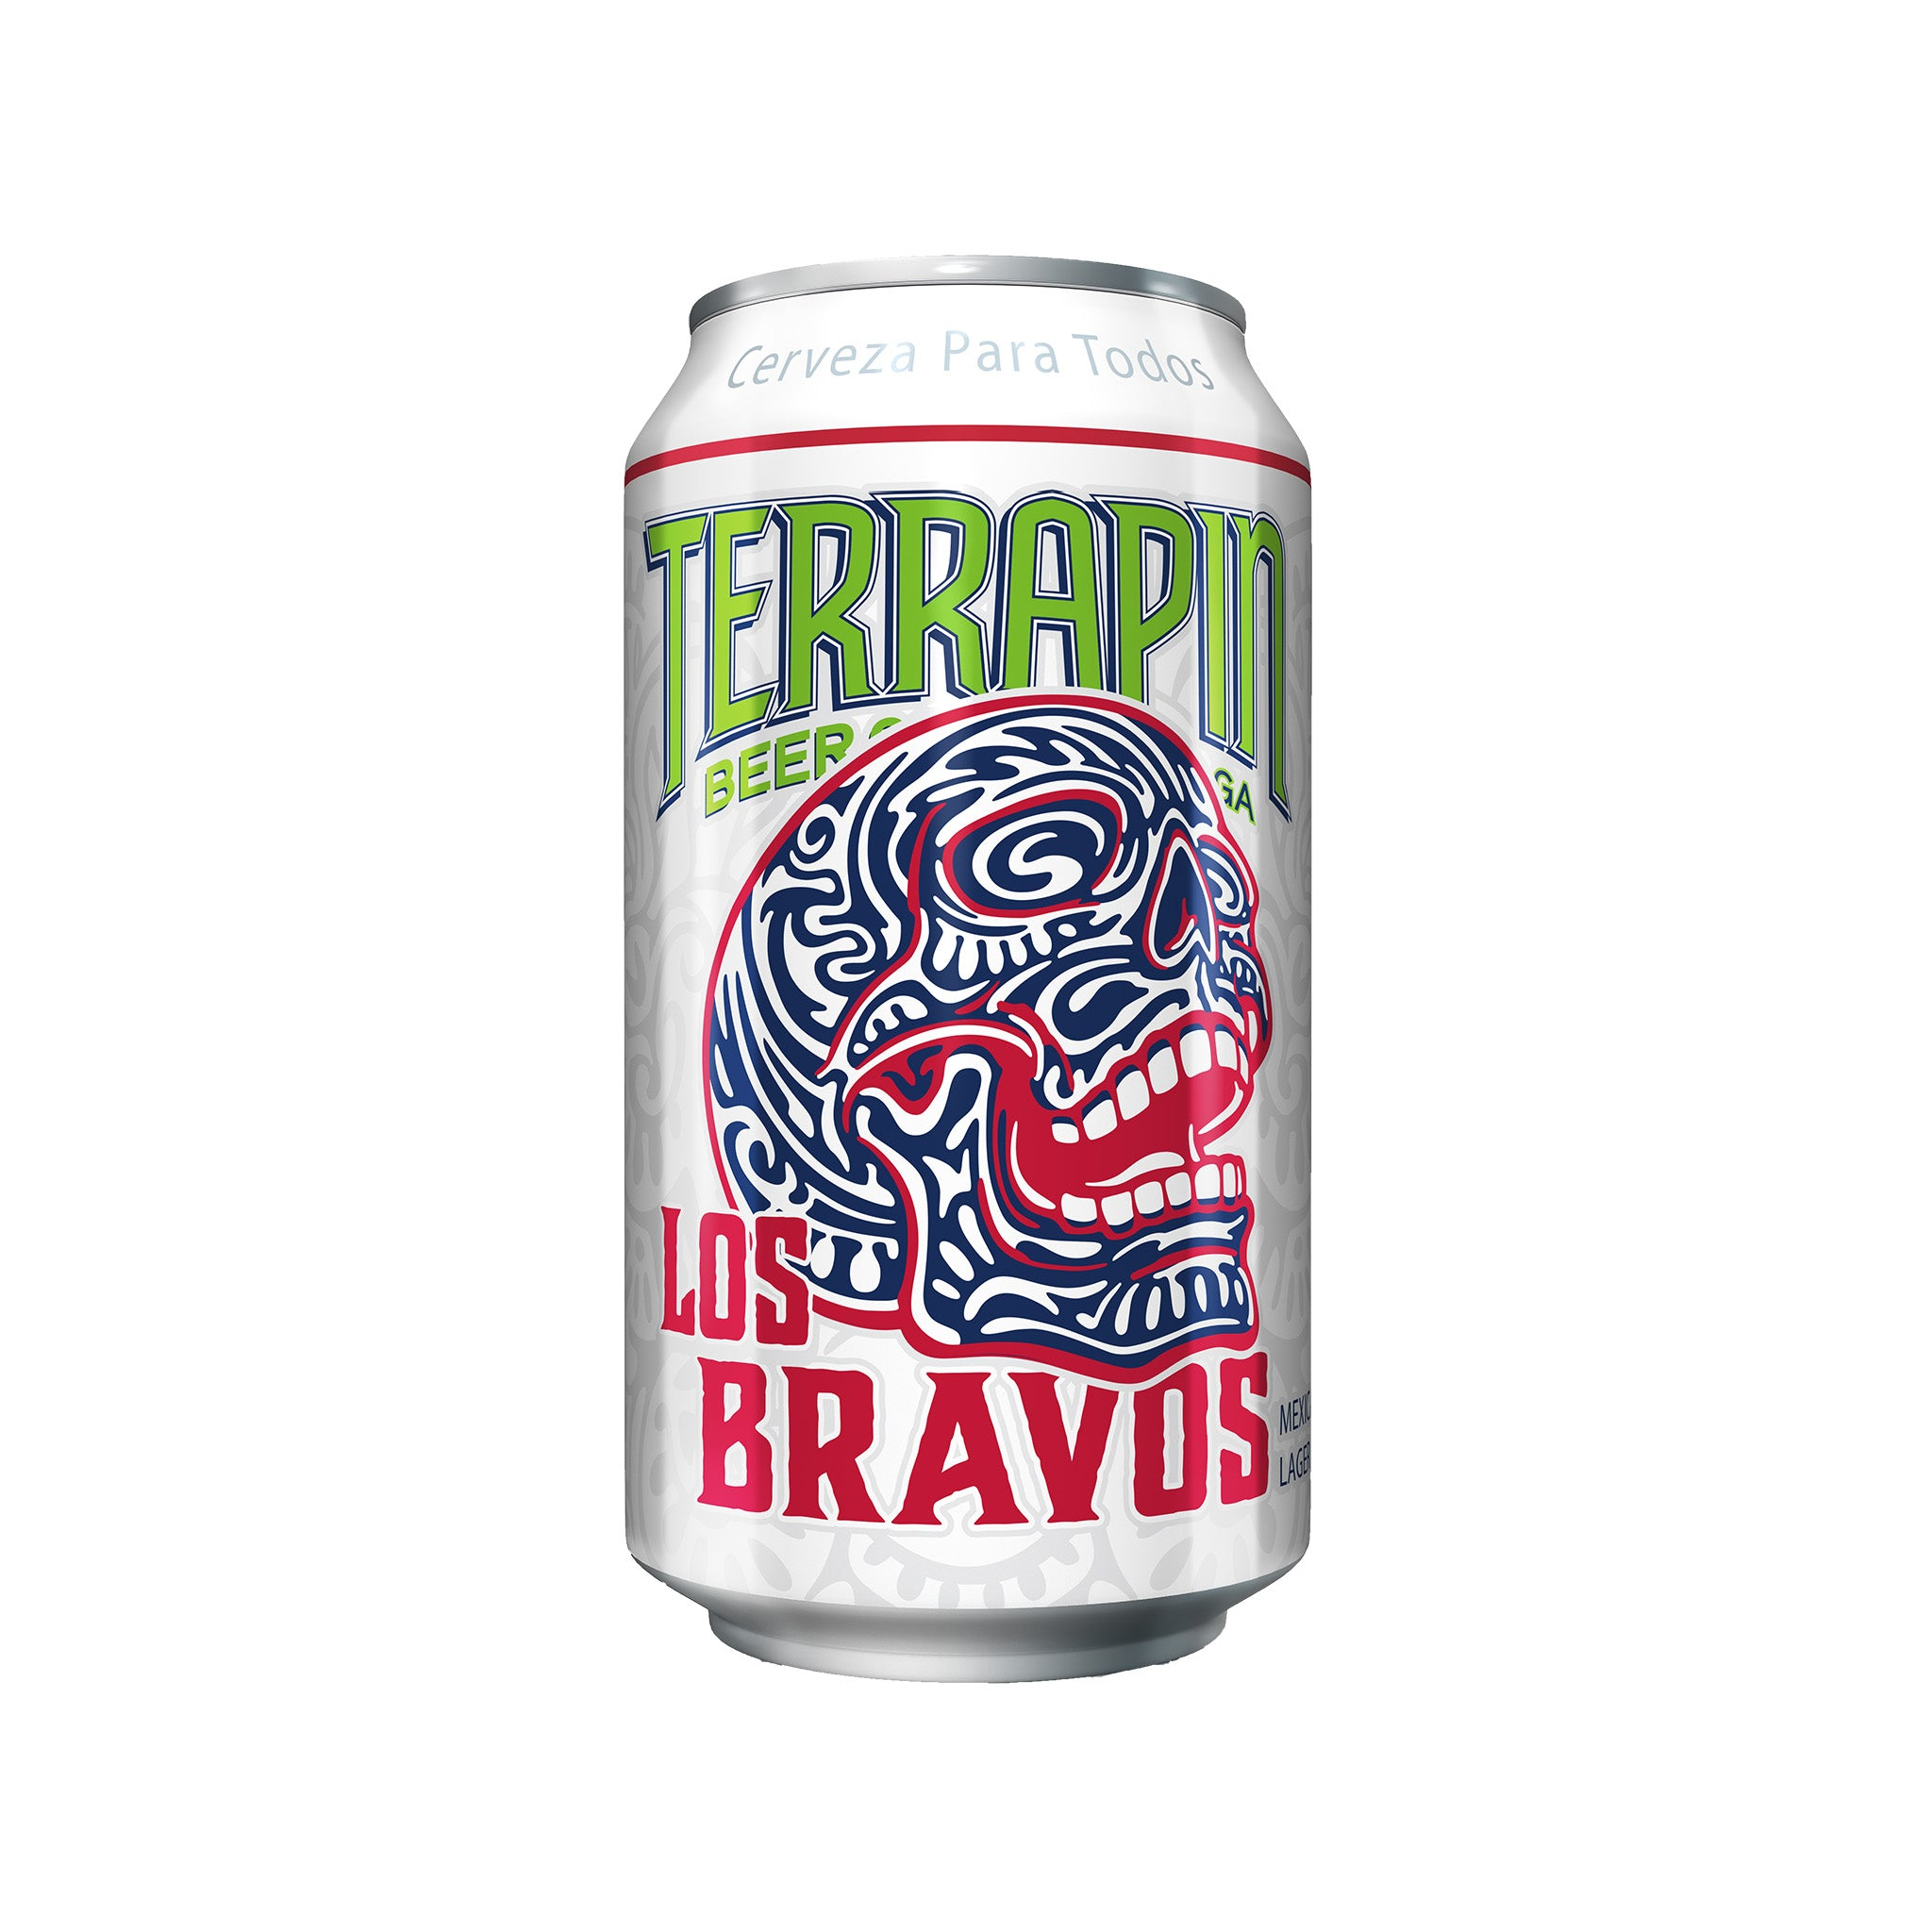 Los Bravos Mexican-Style Lager